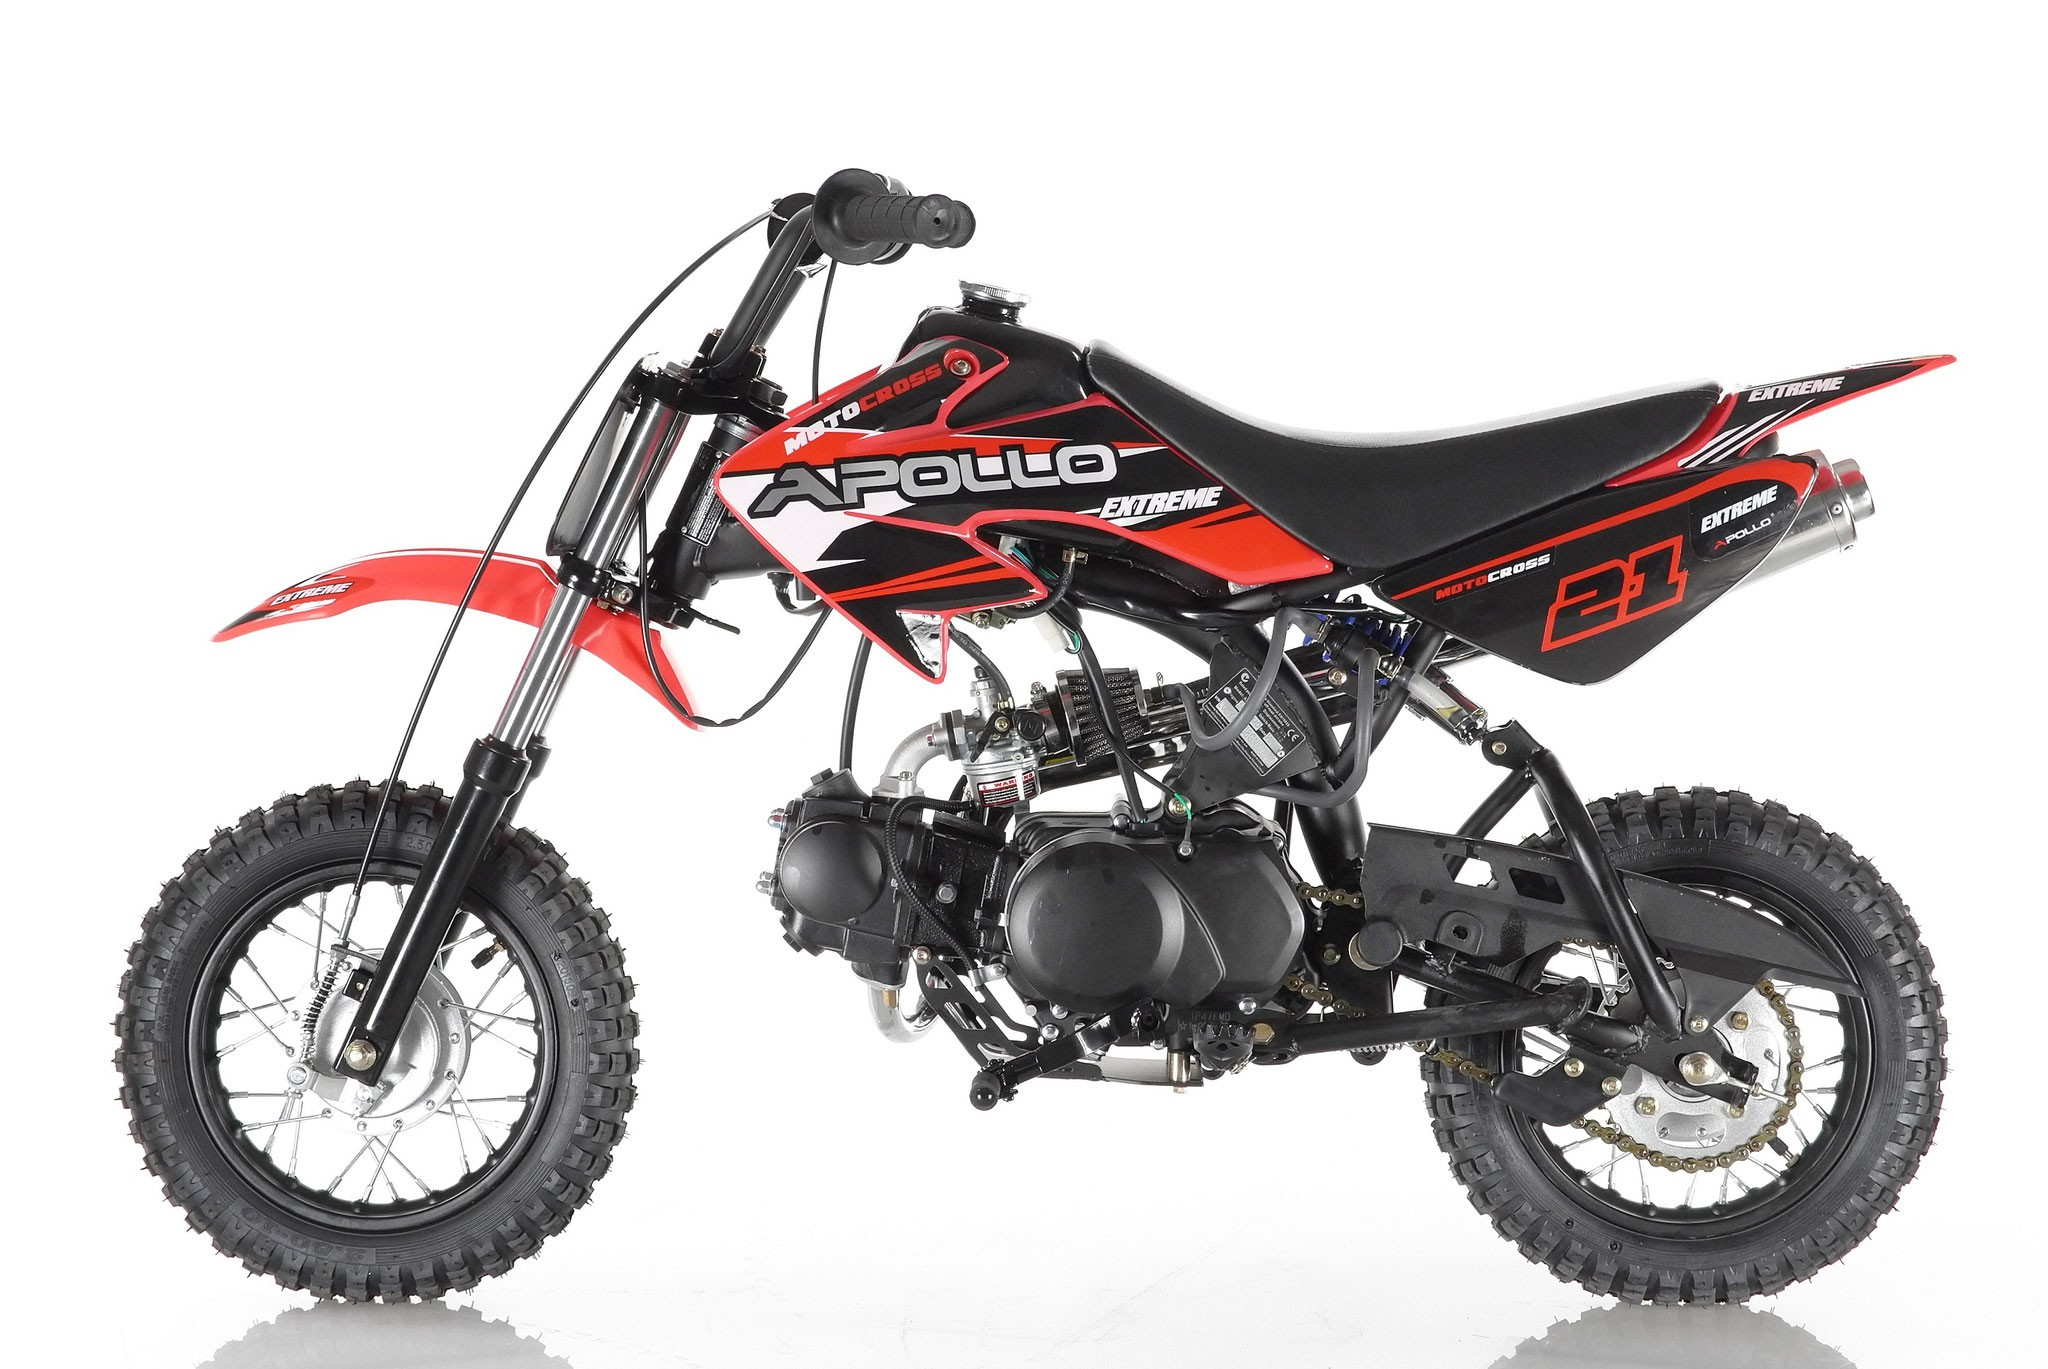 20f7017bf86 ... Apollo 70cc DB-21 3 Speed Semi Auto Pit Dirt Bike ...